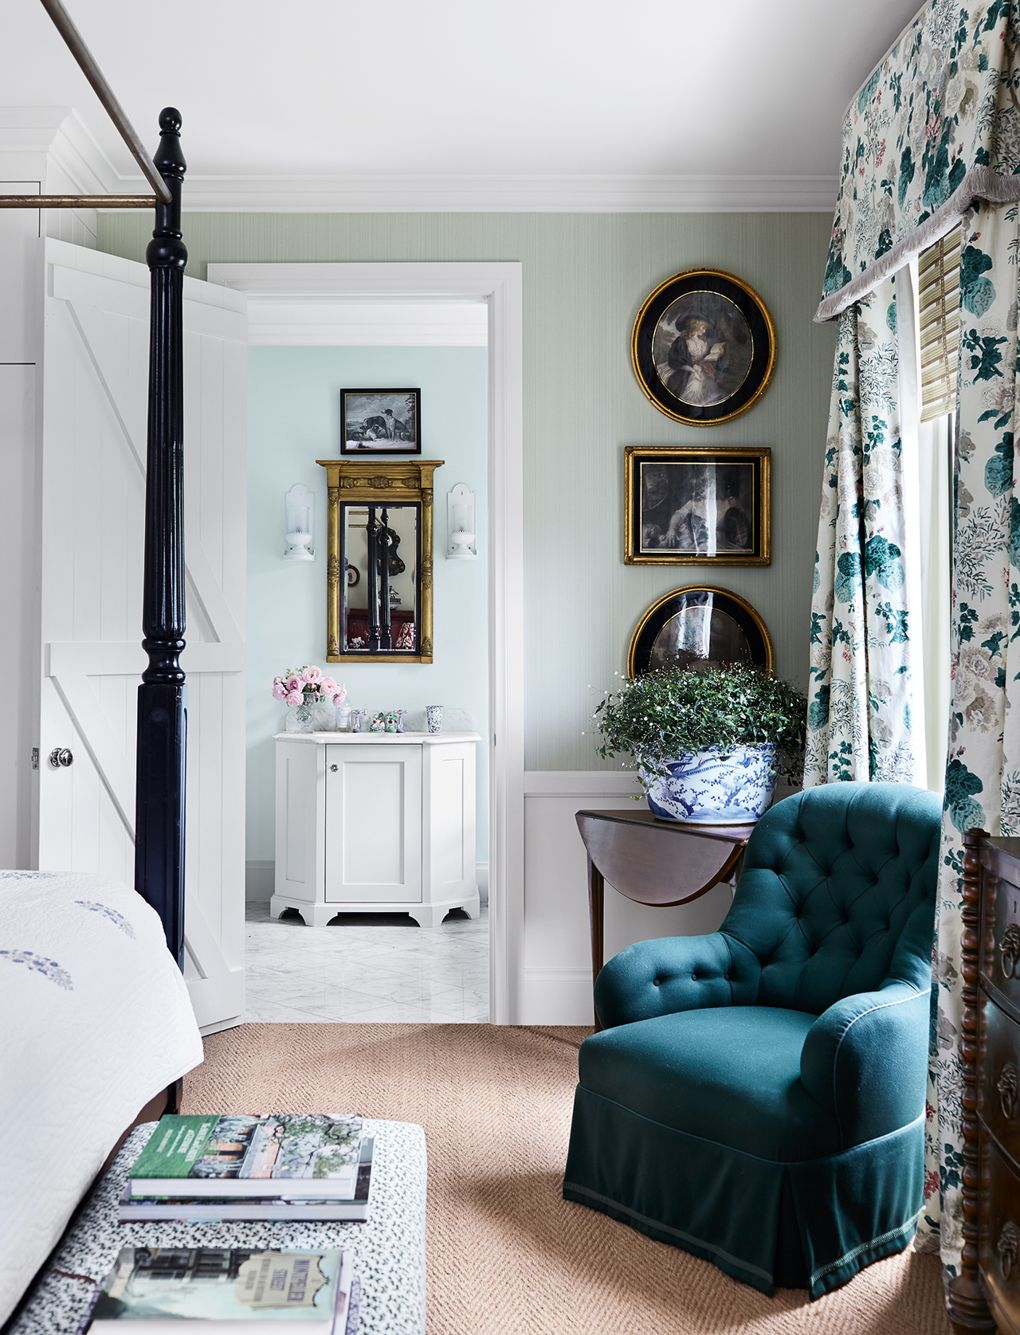 12 An Australian Home Packed With English Country House Style - Genmice